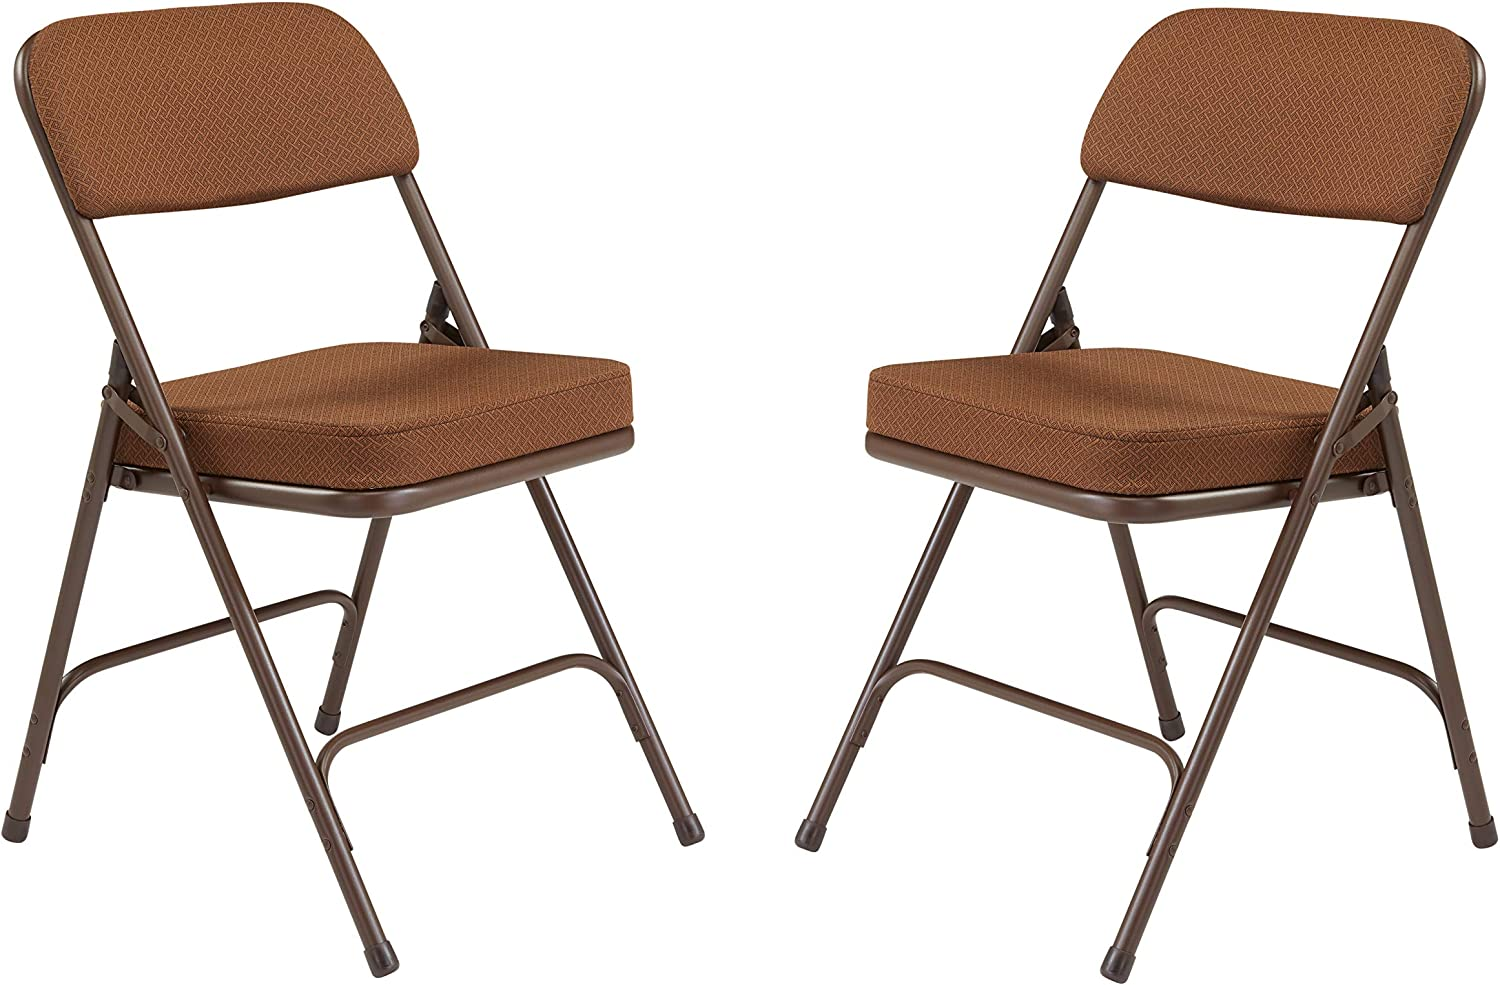 National Public Seating 3200 Series Steel Frame Upholstered Premium Fabric Seat and Back Folding Chair with Double Brace, 300-Pound Capacity, Antique gold Brown, Carton of 2